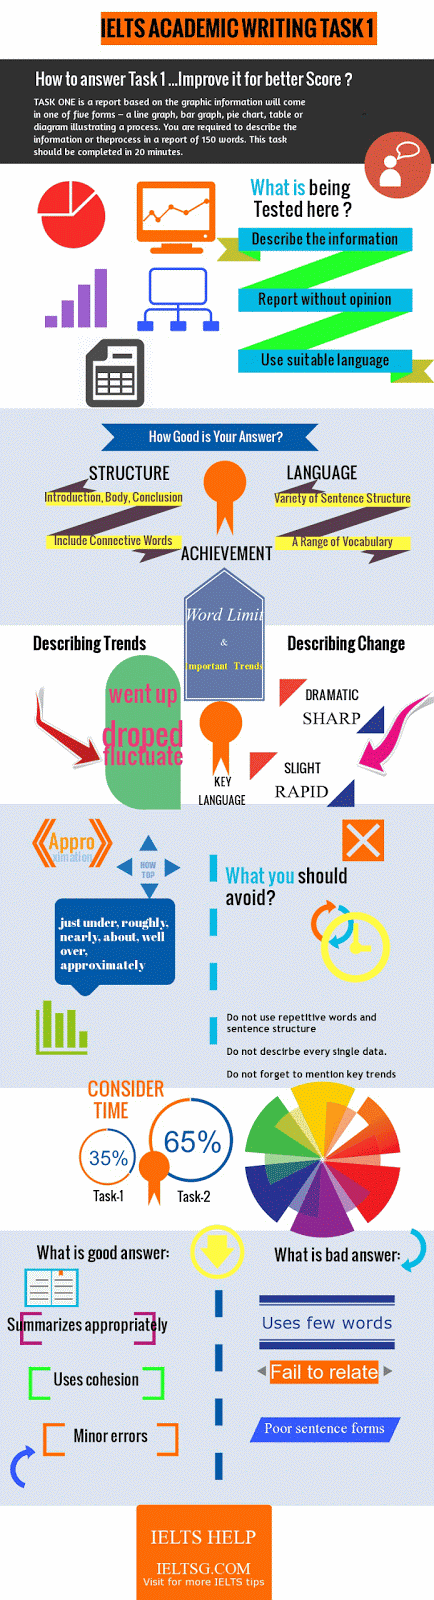 ielts writing task-1 infographics